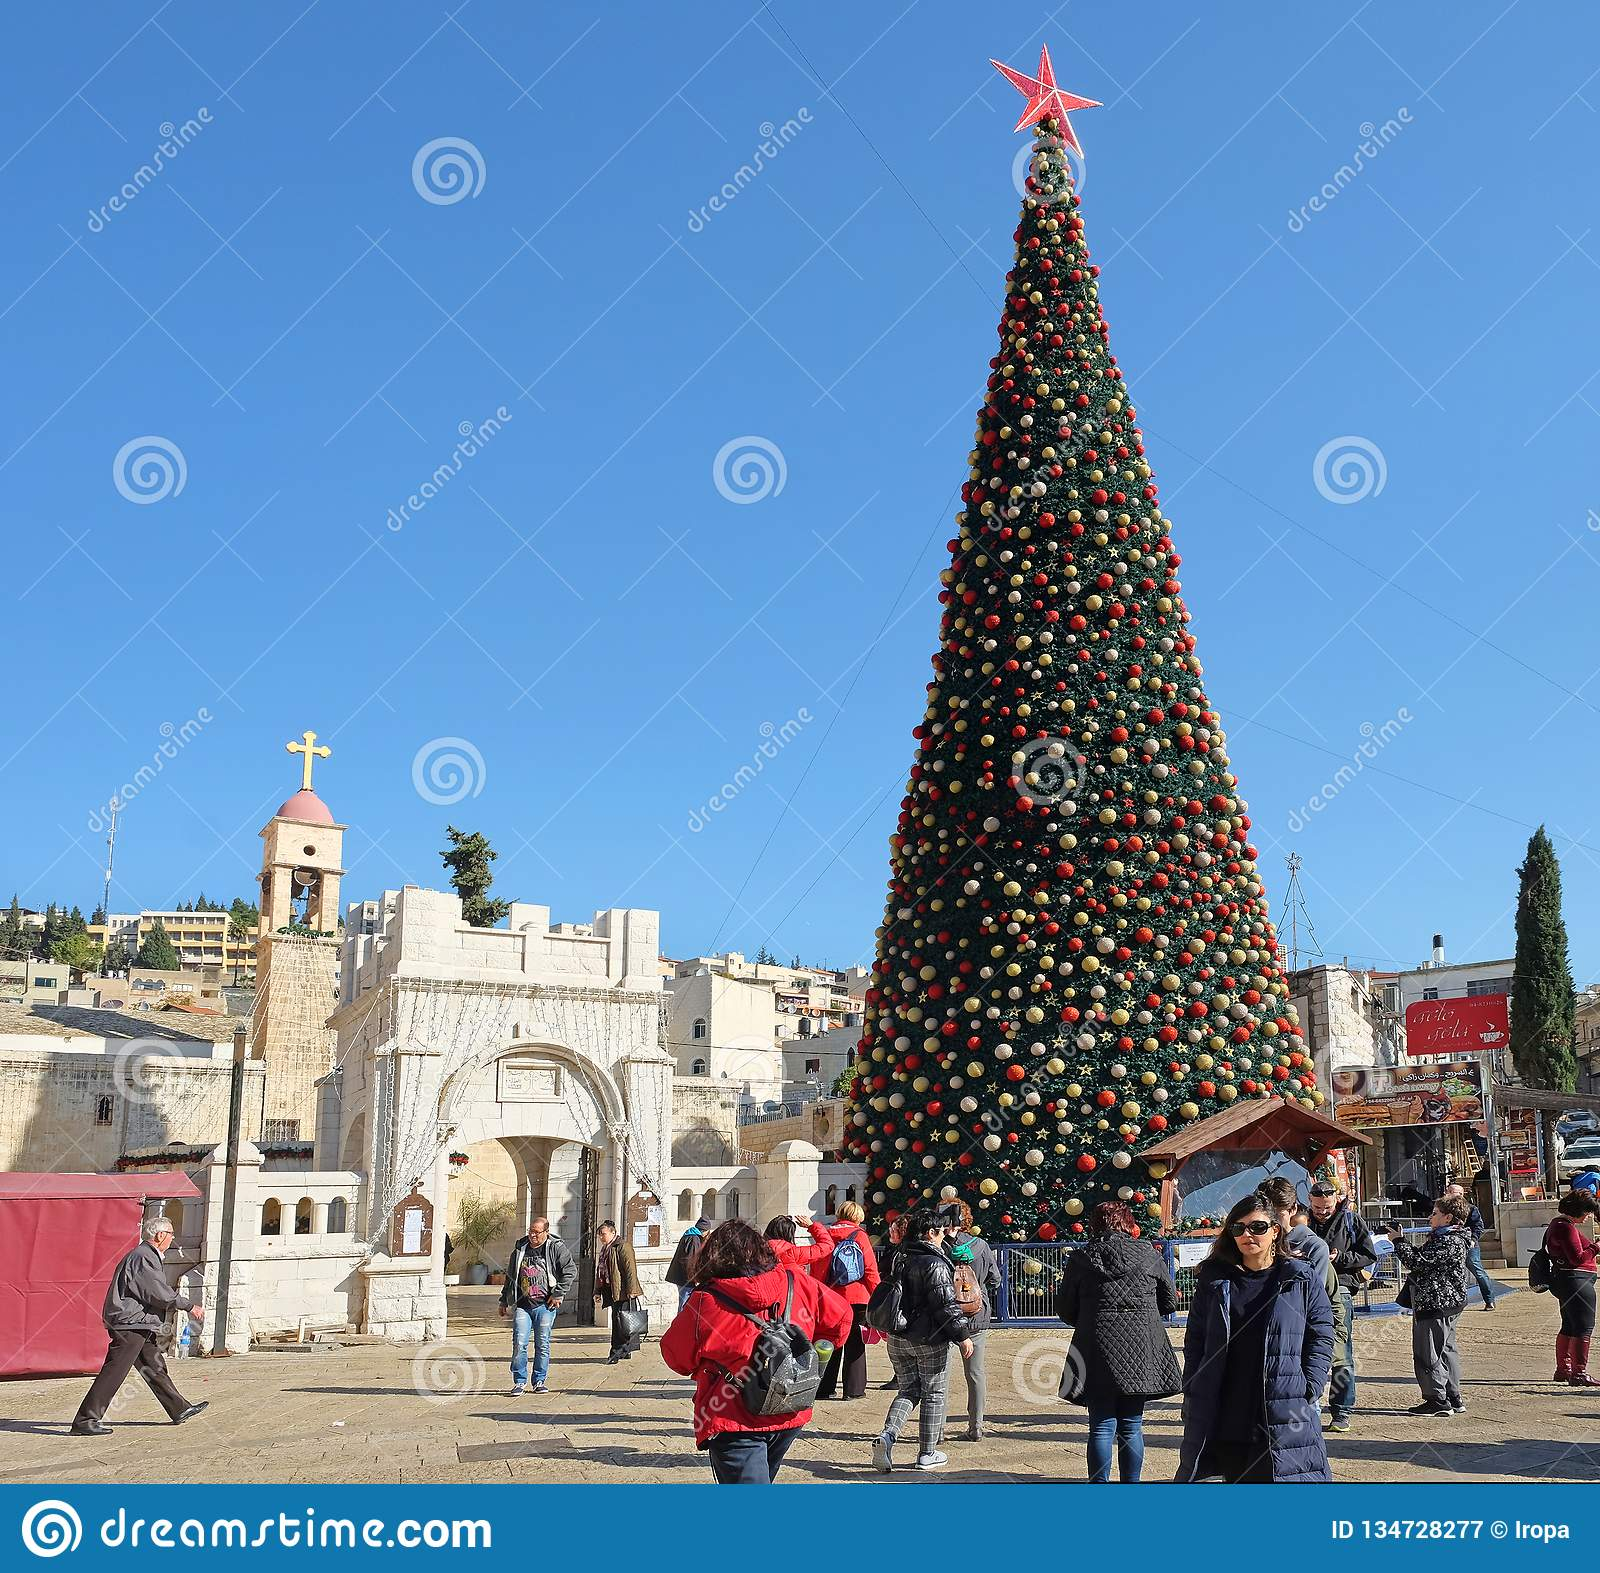 Greek Orthodox Christmas.Christmas Tree In Front Of The Greek Orthodox Church In